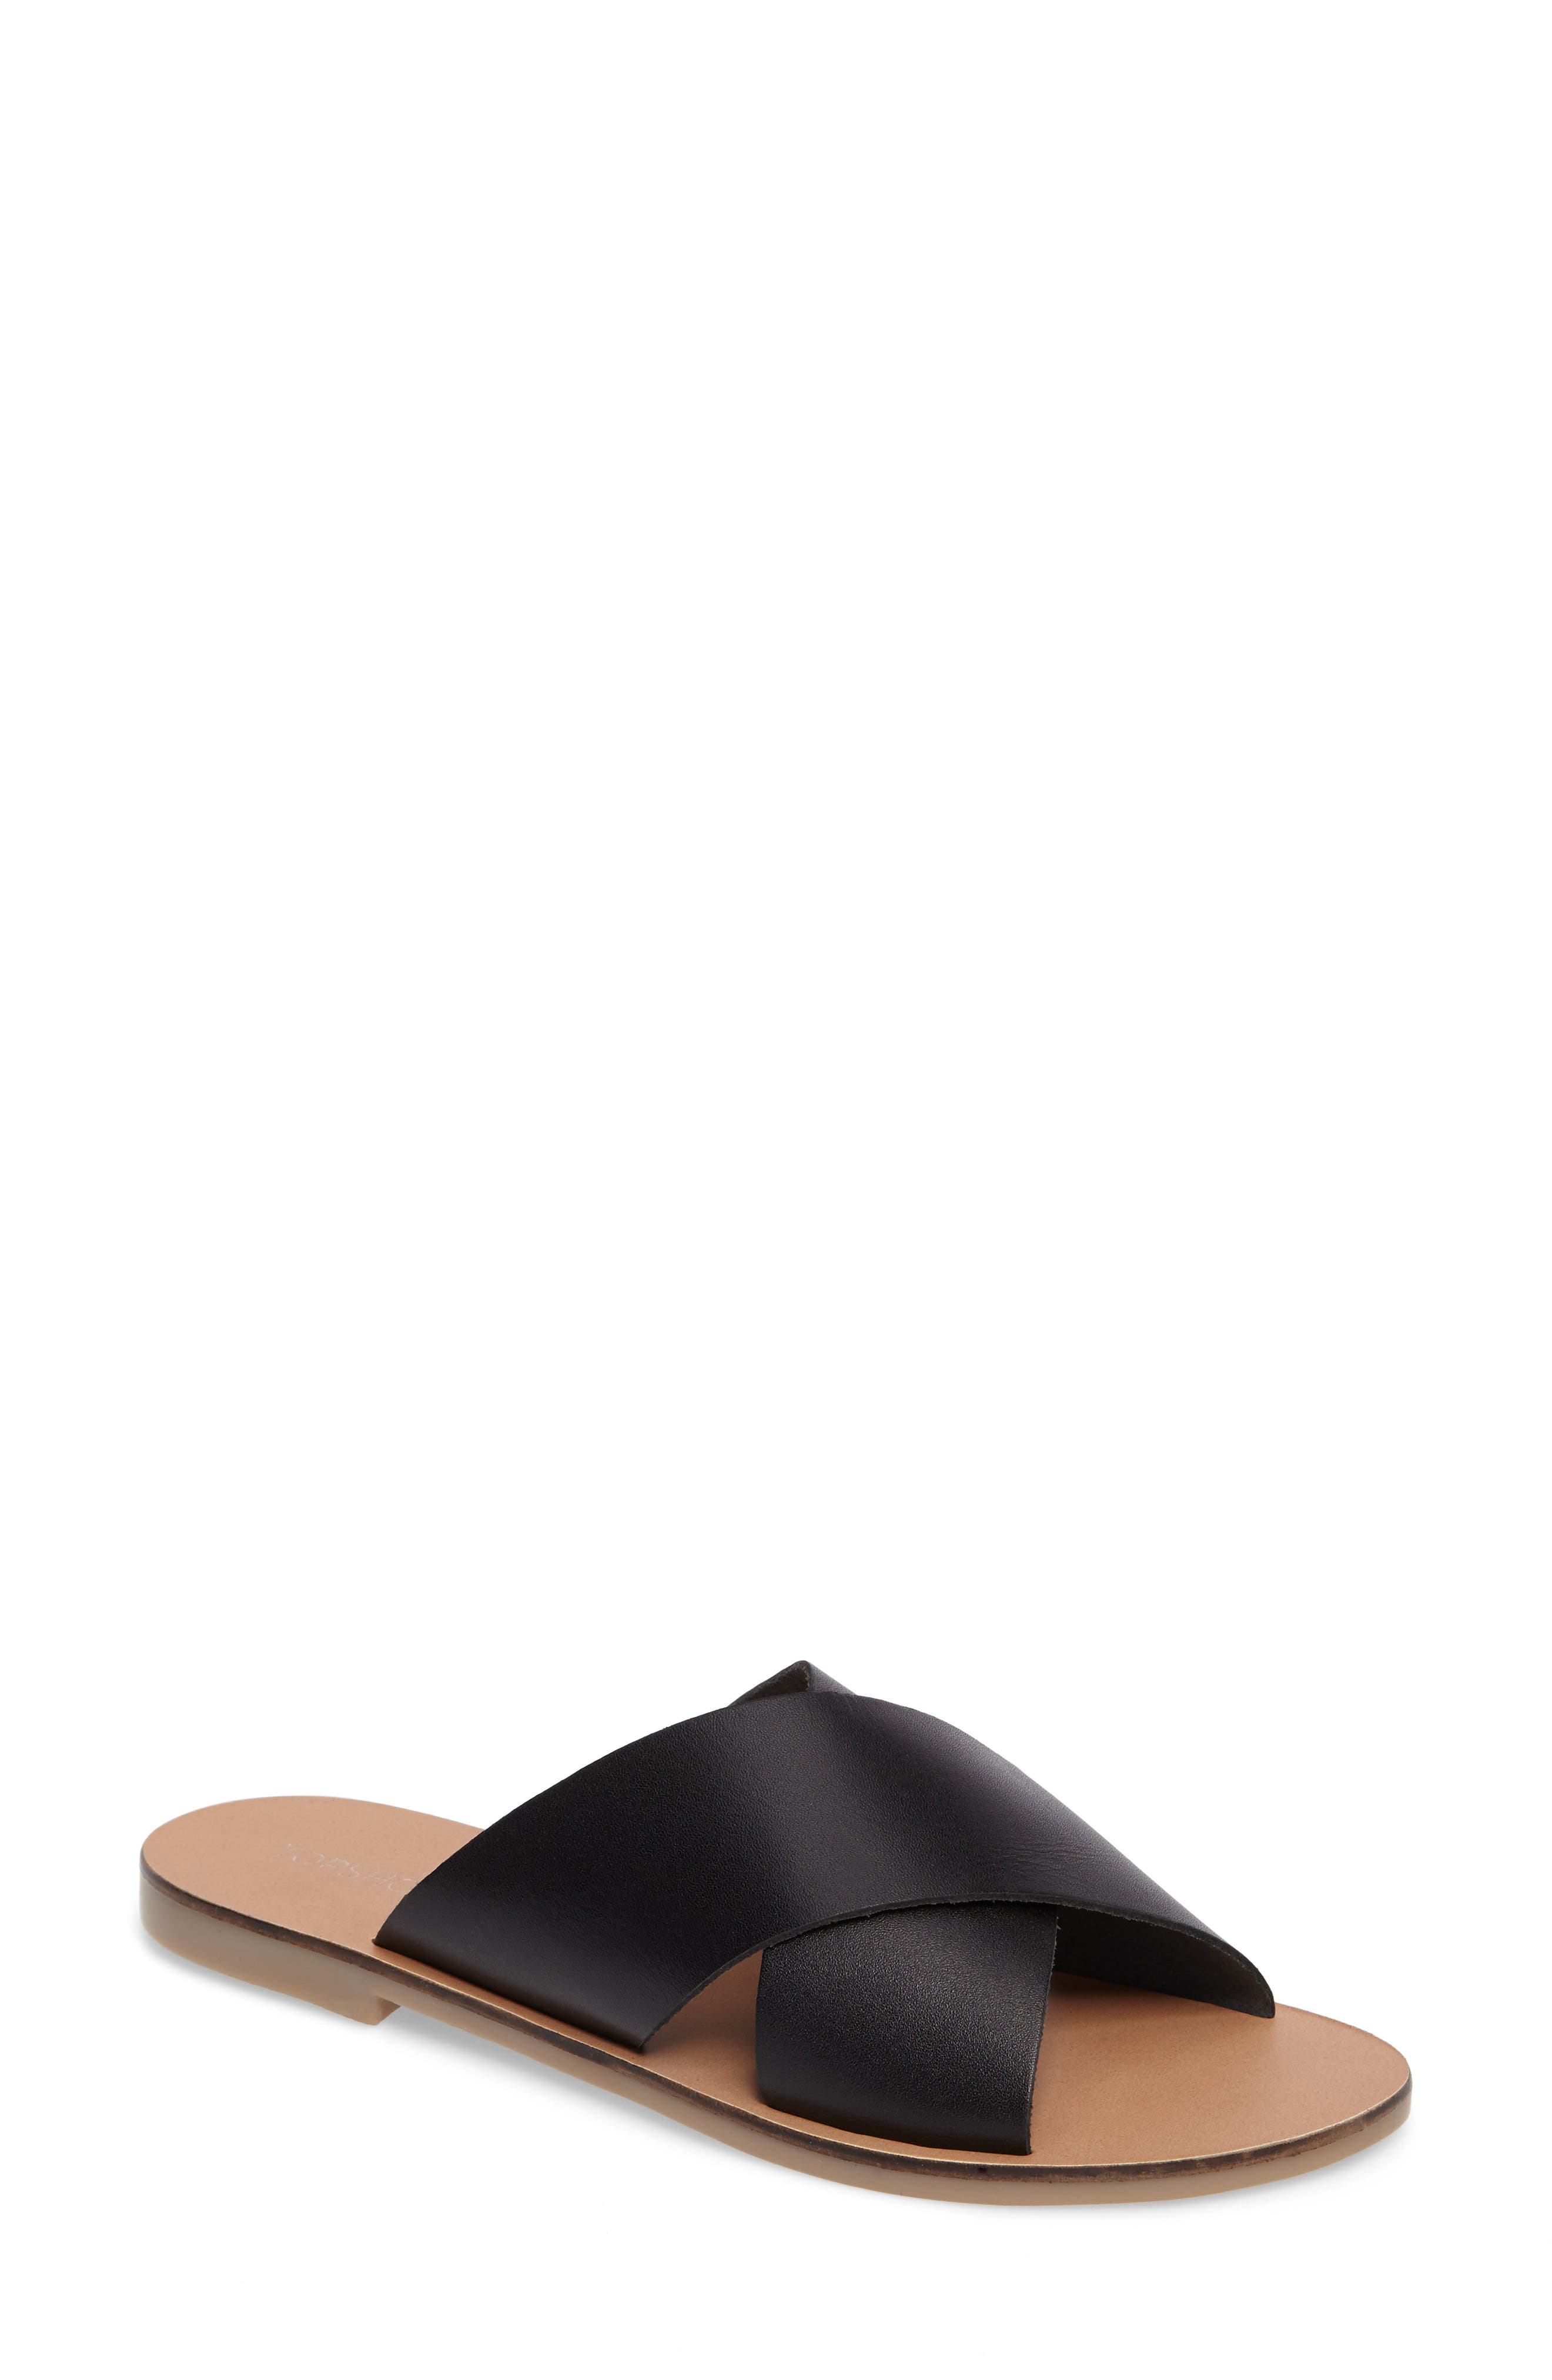 Holiday Cross Strap Sandal,                         Main,                         color, 001